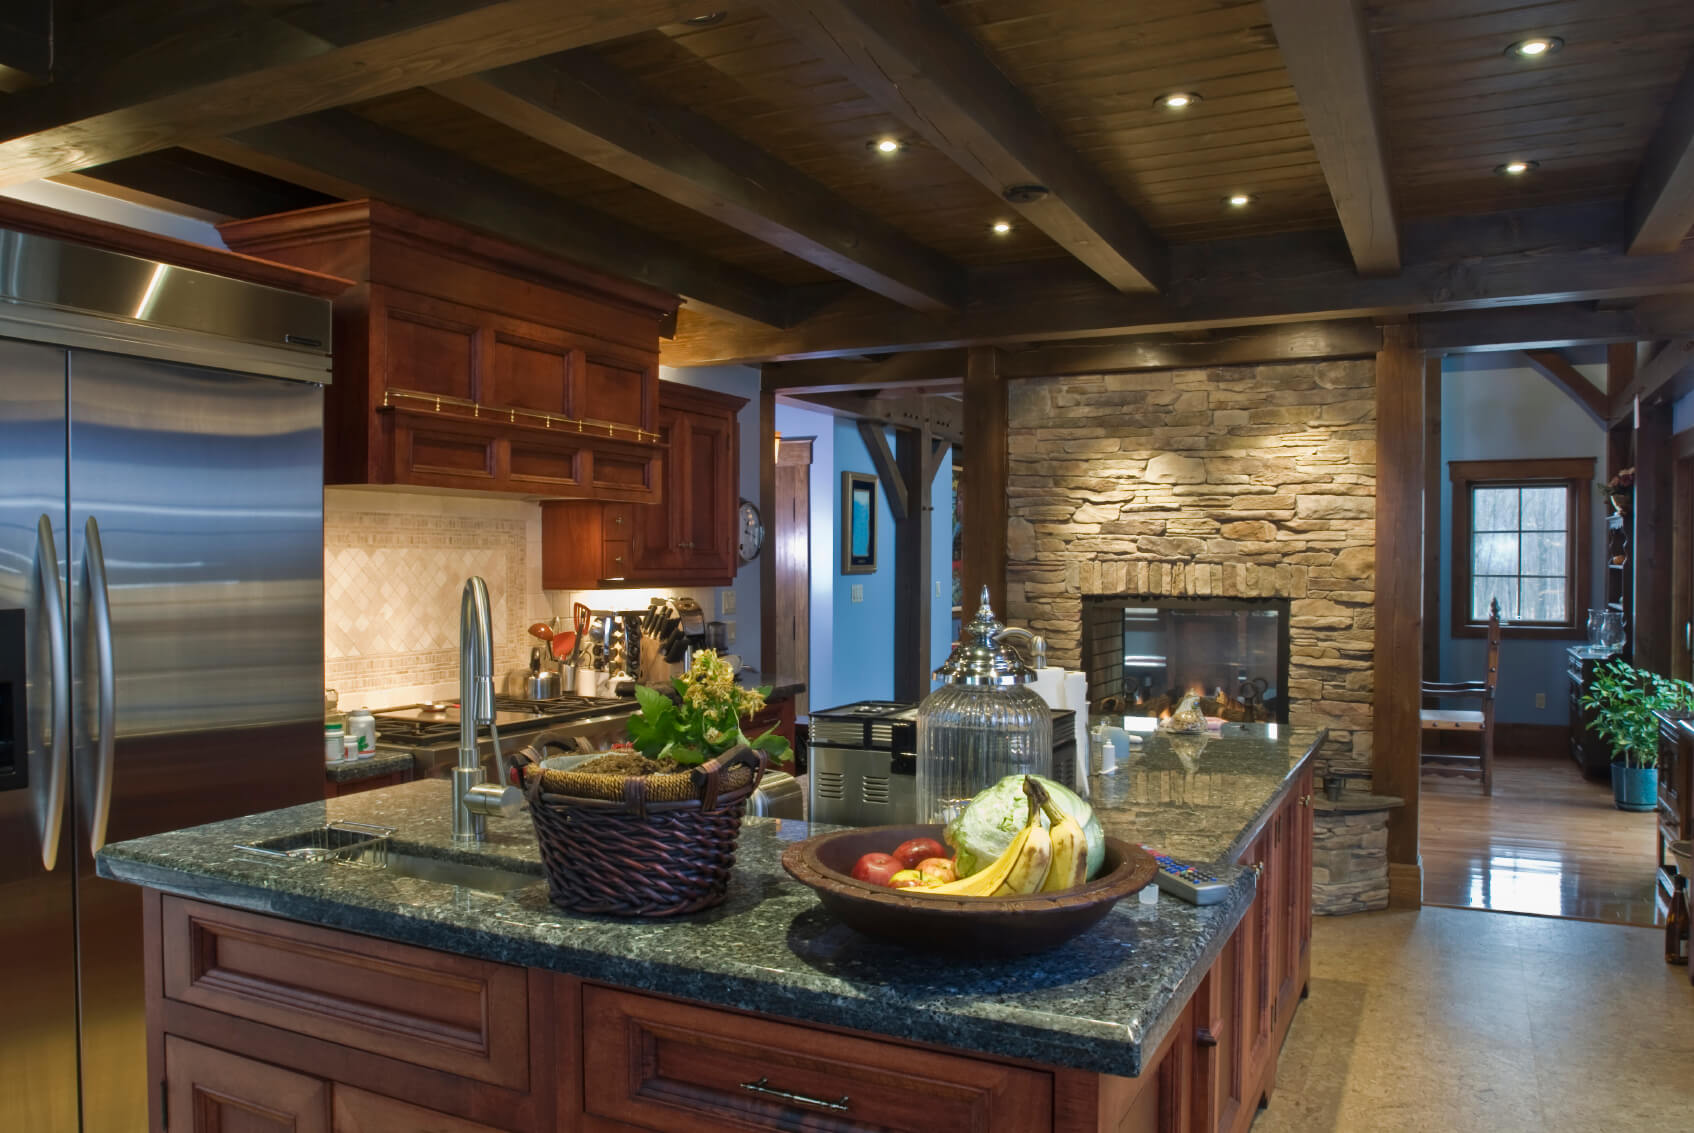 Rustic look kitchen features brick pass-through fireplace under dark wood exposed beams, with cherry wood cabinetry and forrest green marble countertops.